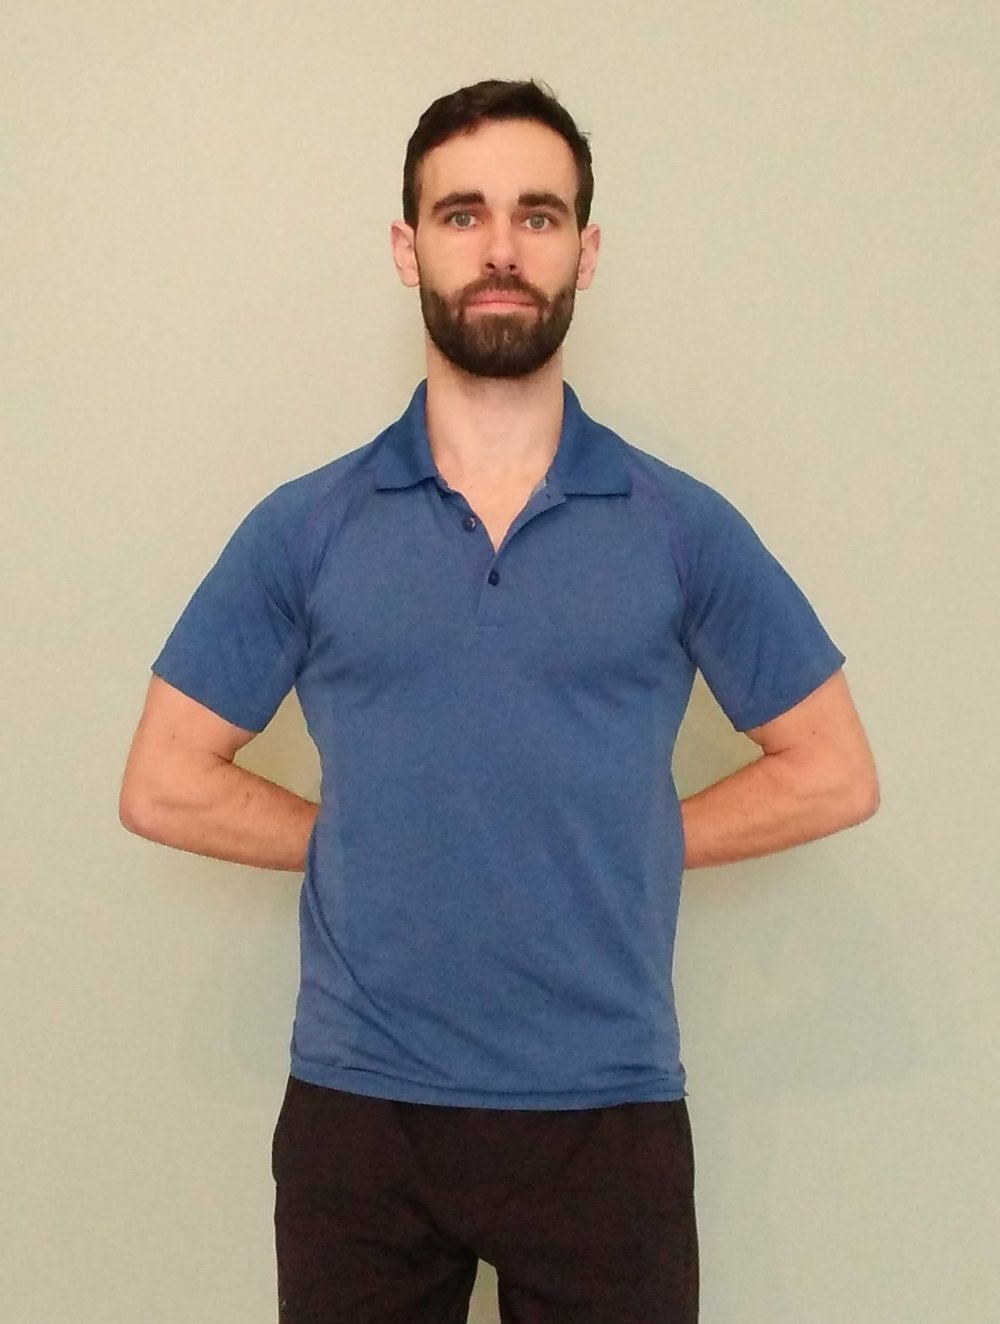 Two arm variation of hand behind back stretch